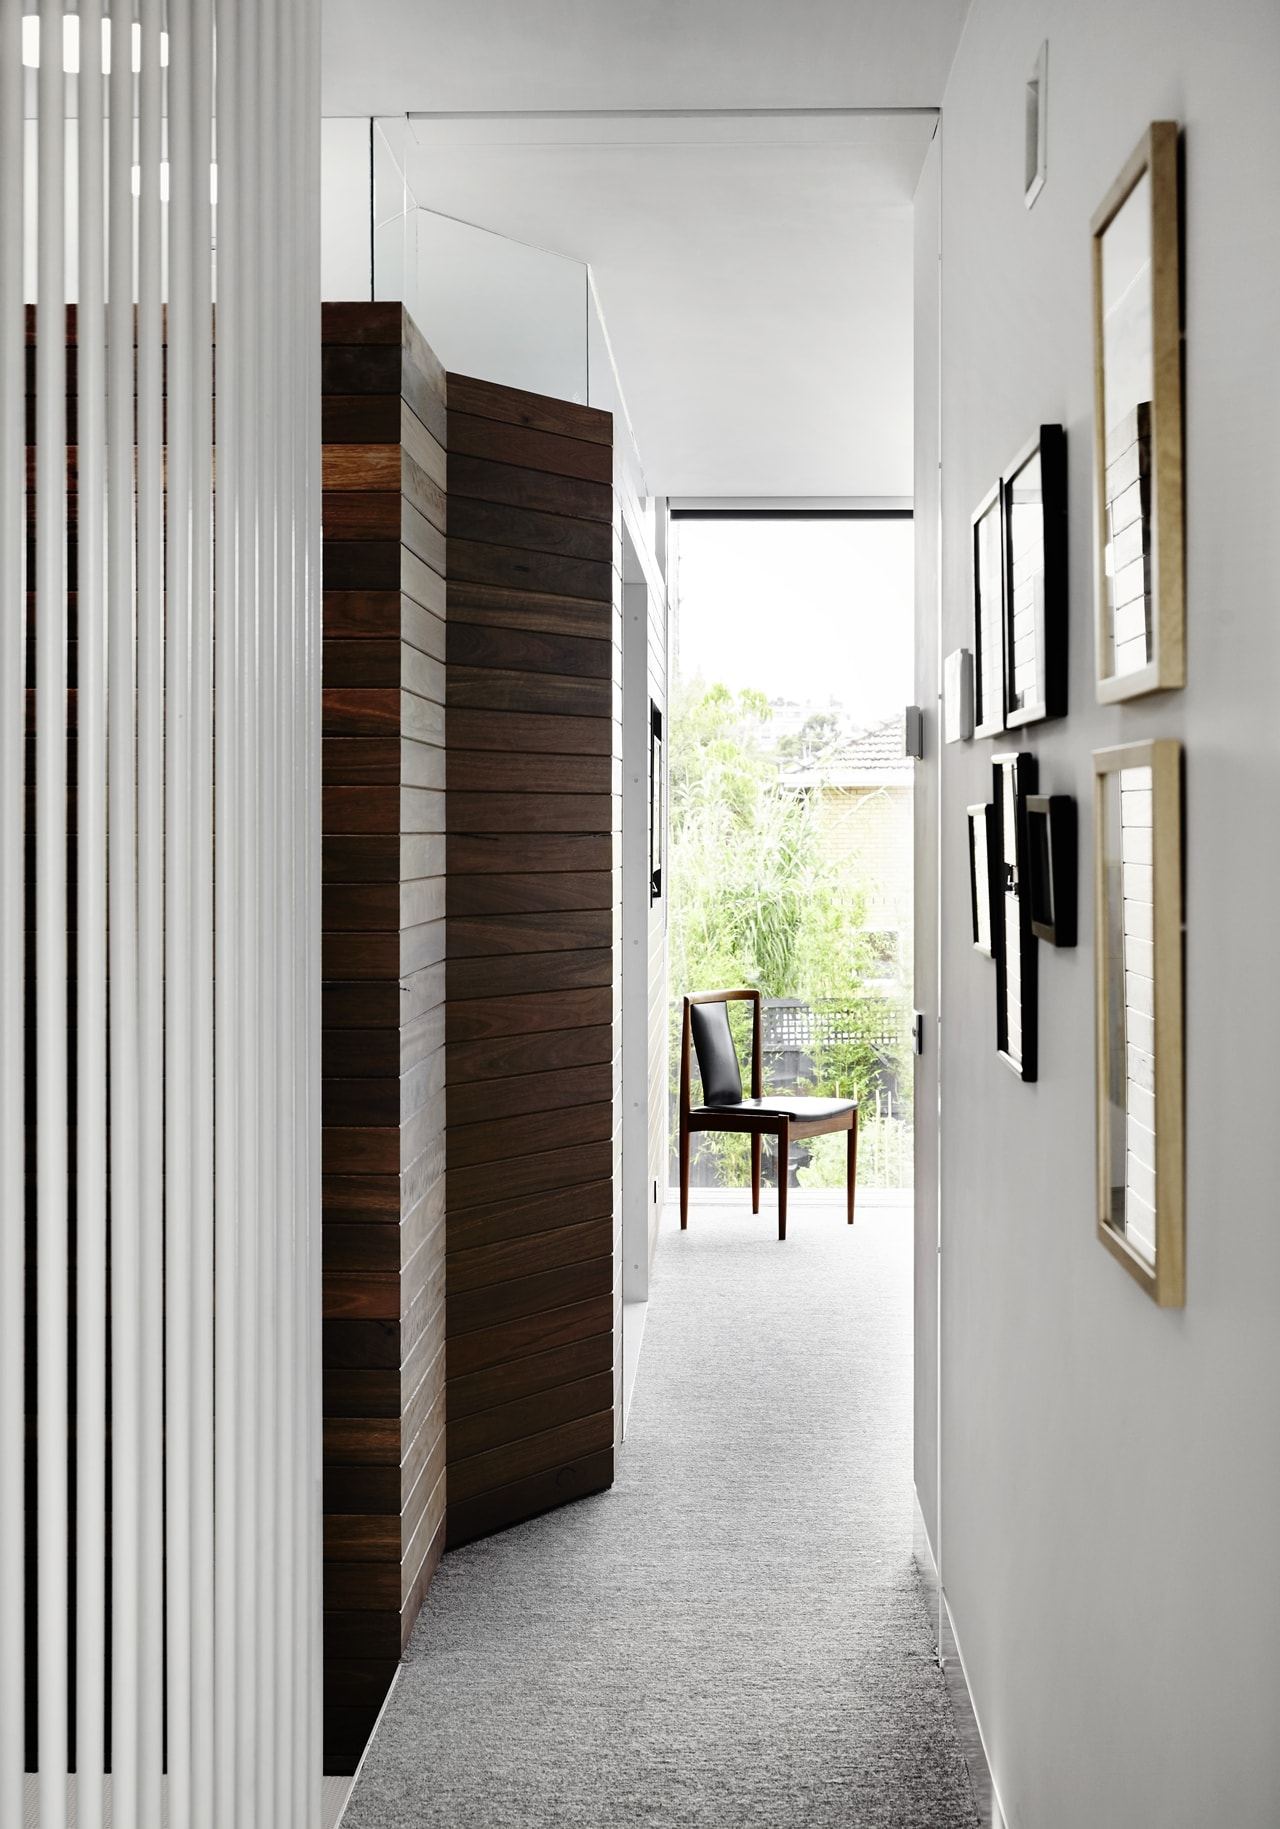 Hallway by Austin Maynard Architects